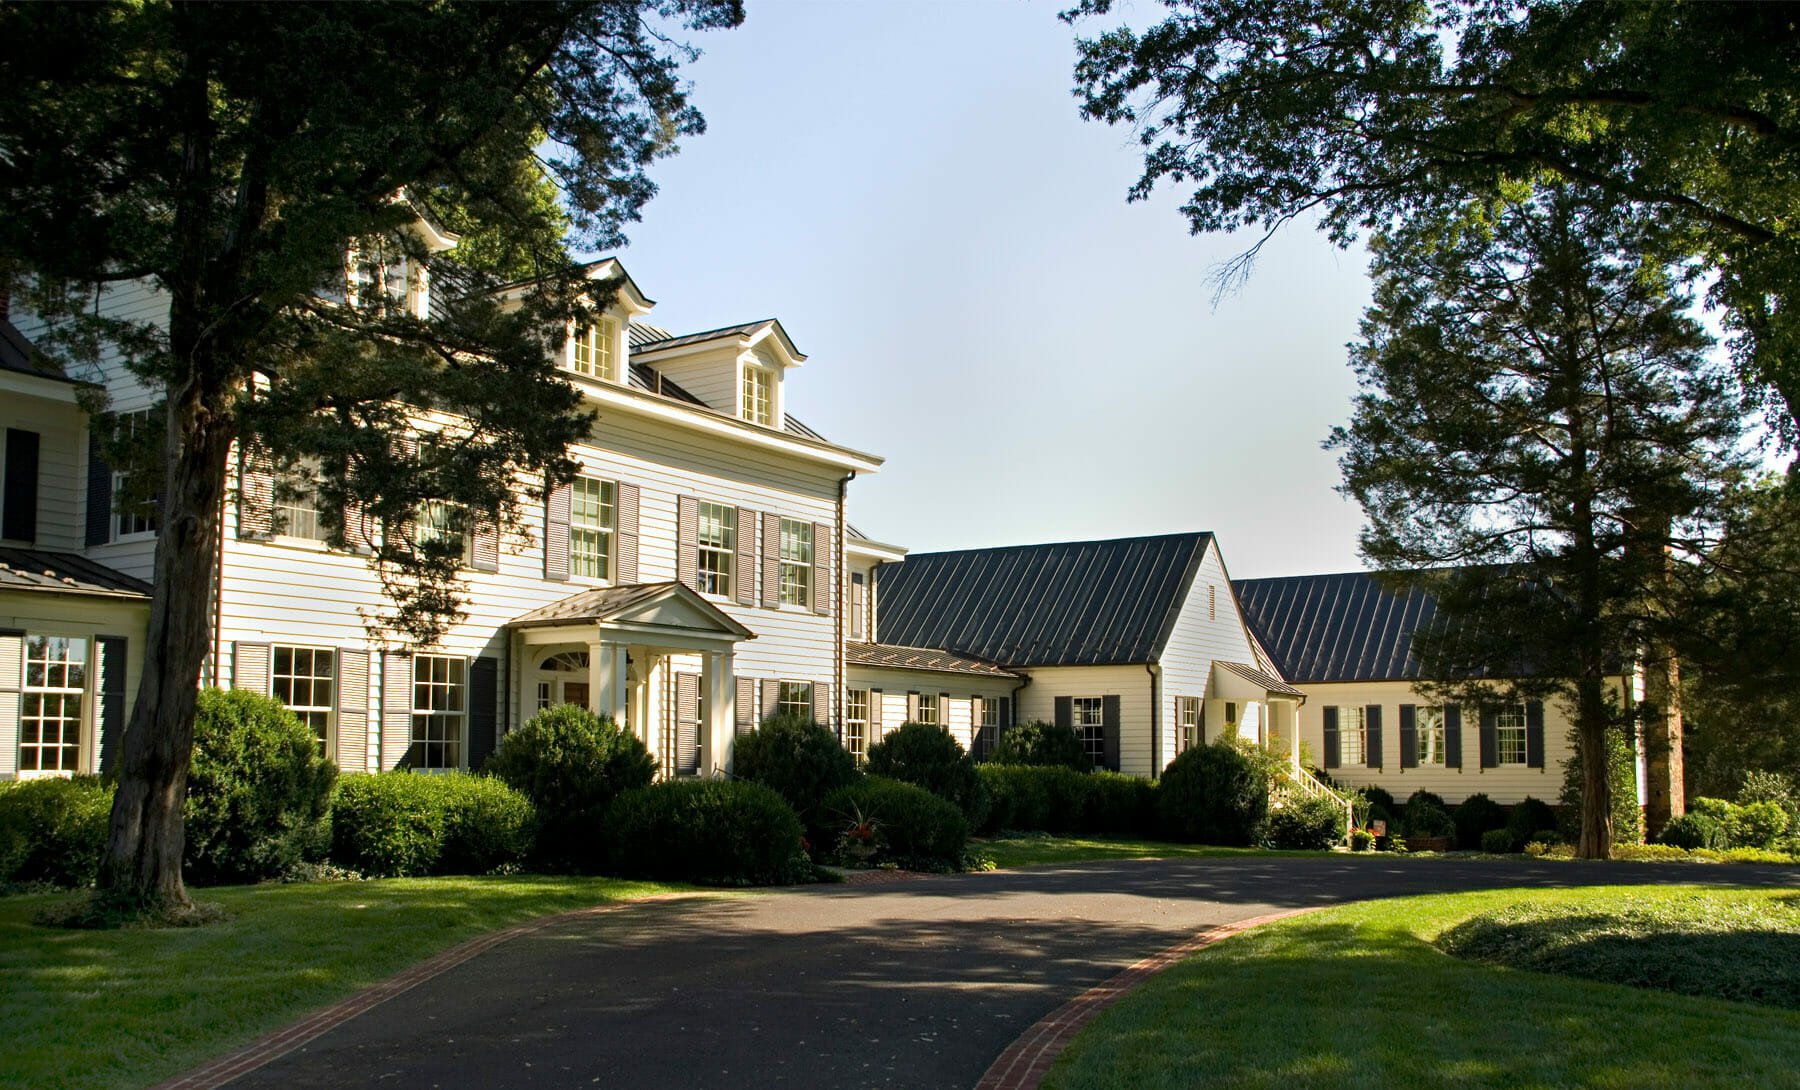 An estate located in Albemarle County near Charlottesville, Virginia.